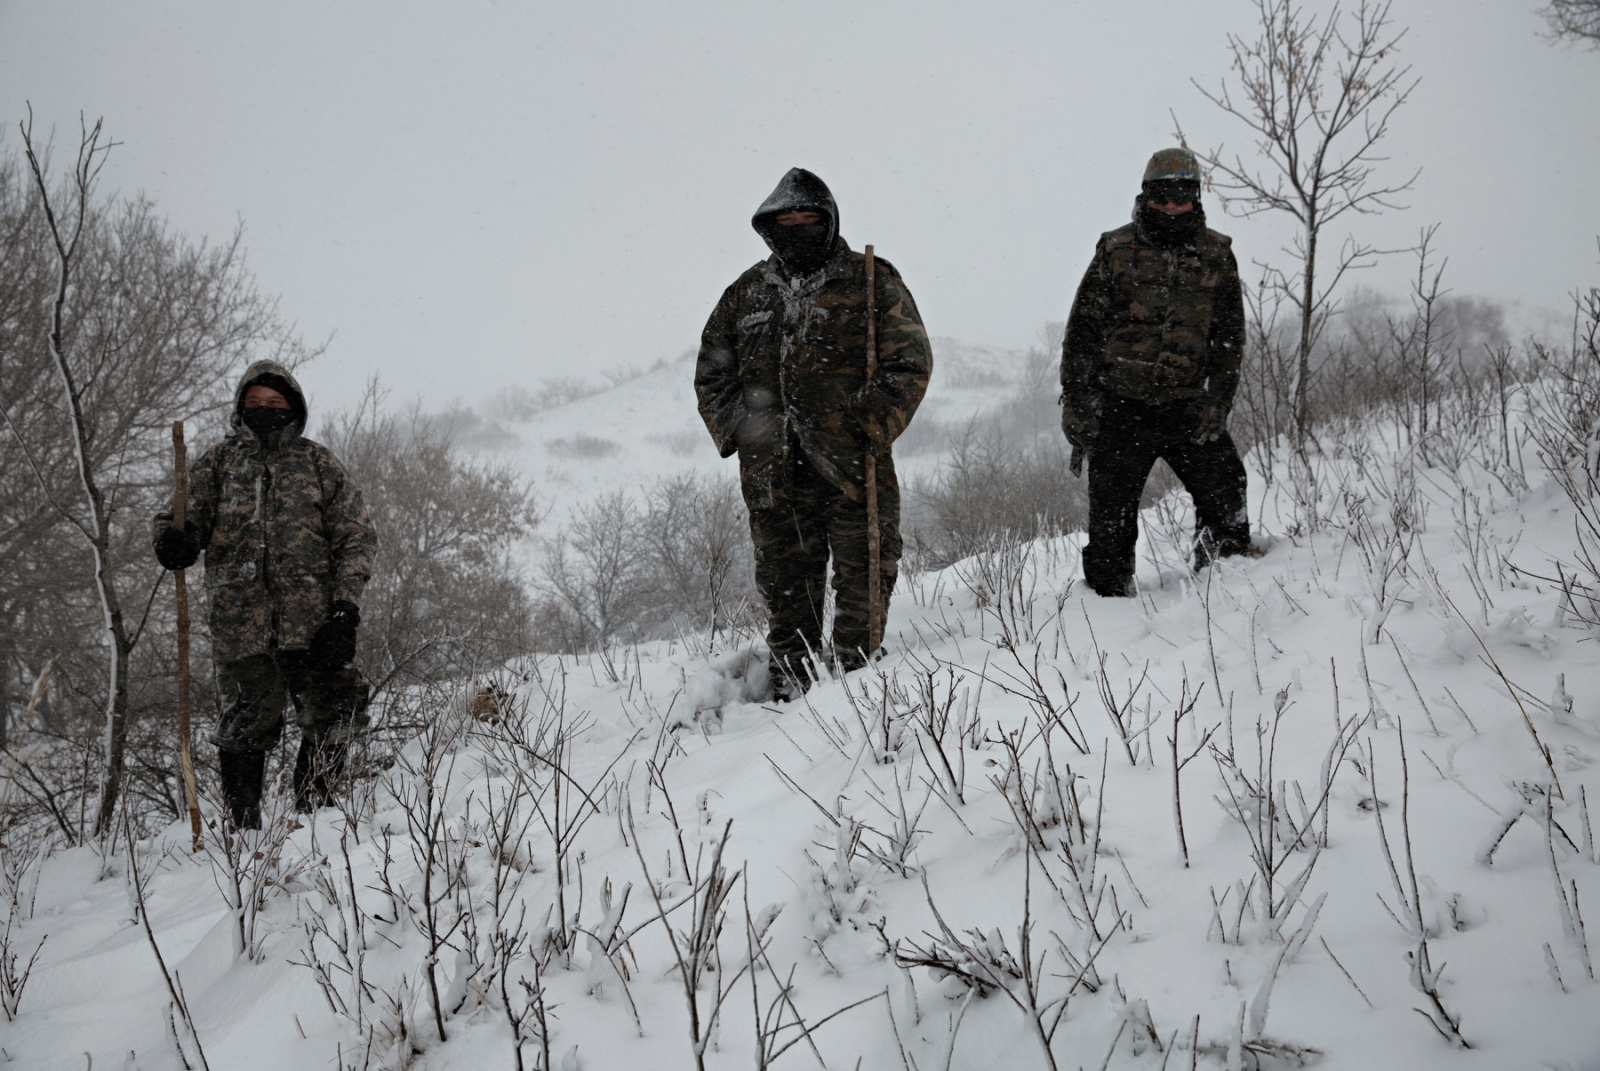 Three water protectors, who refused to identify themselves, stood on a hill while the veterans marched and made their presence known during a December blizzard.